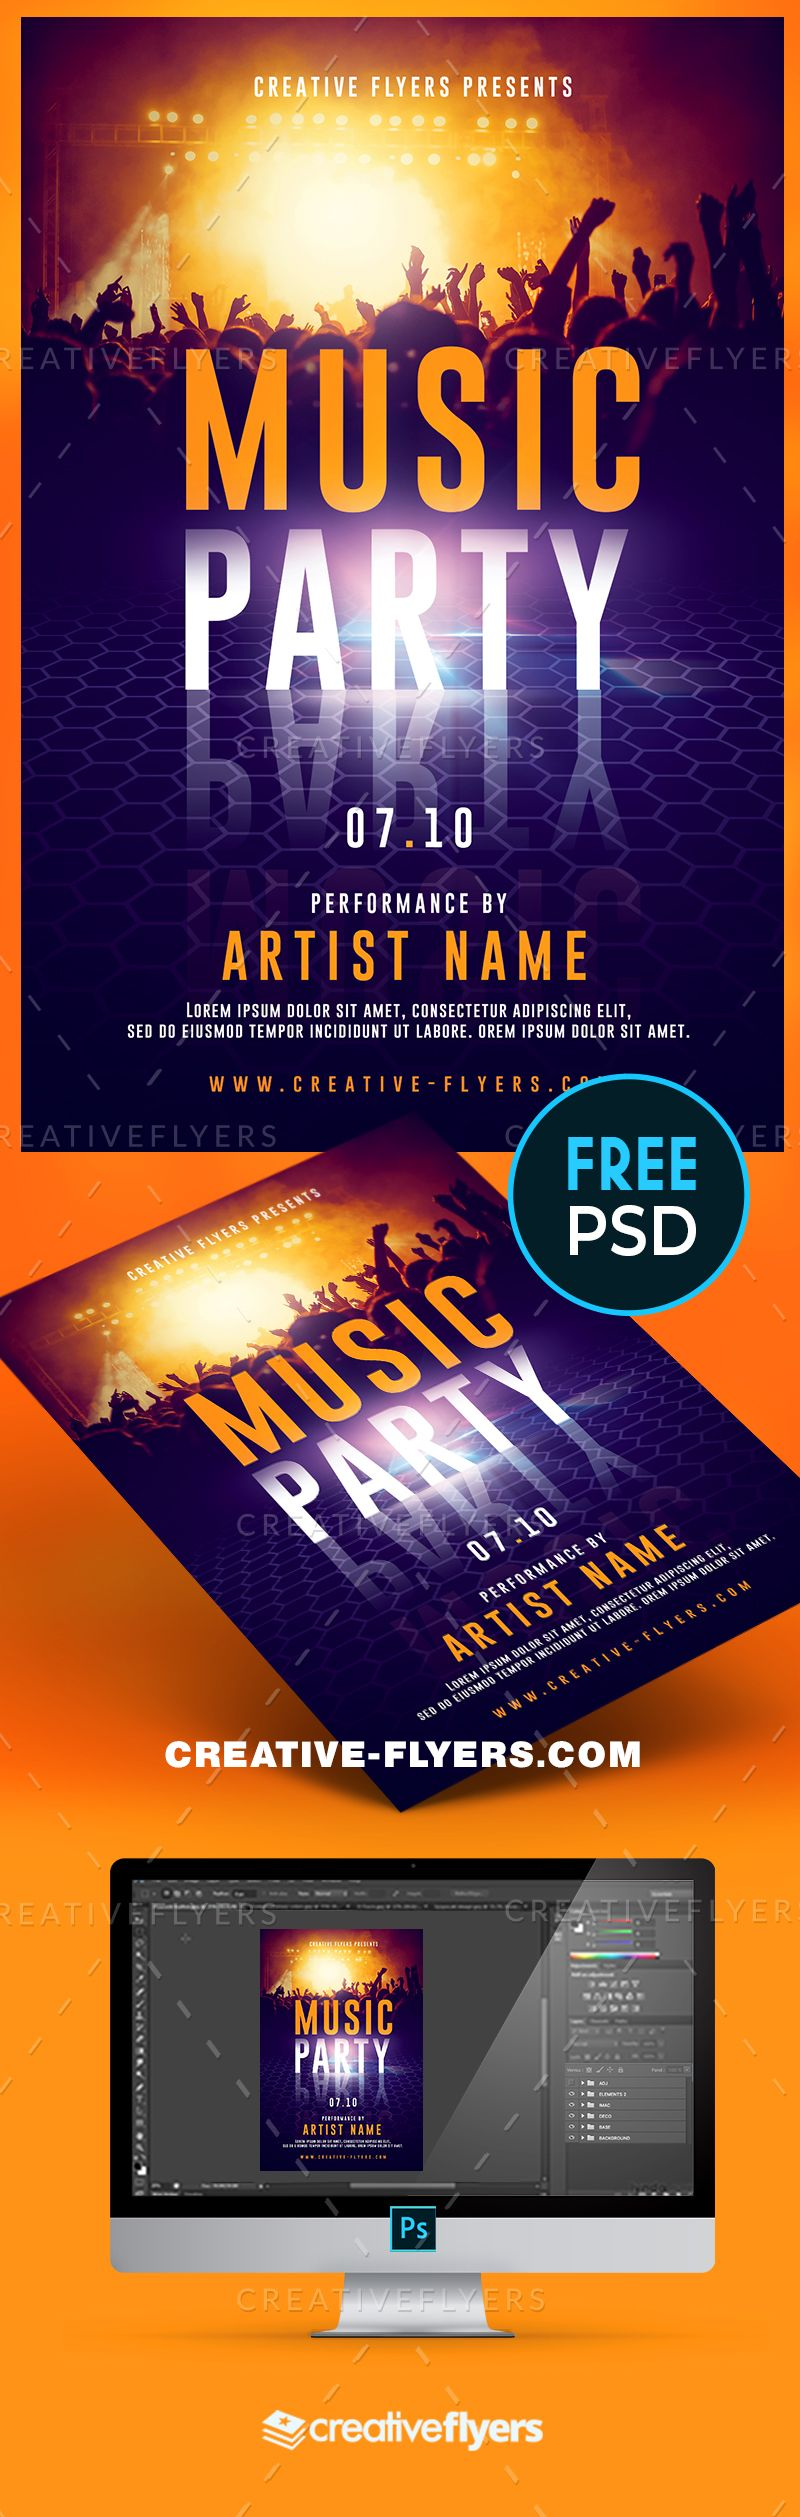 Live Music Party Flyer Psd | Photoshop - Creative Flyers ...